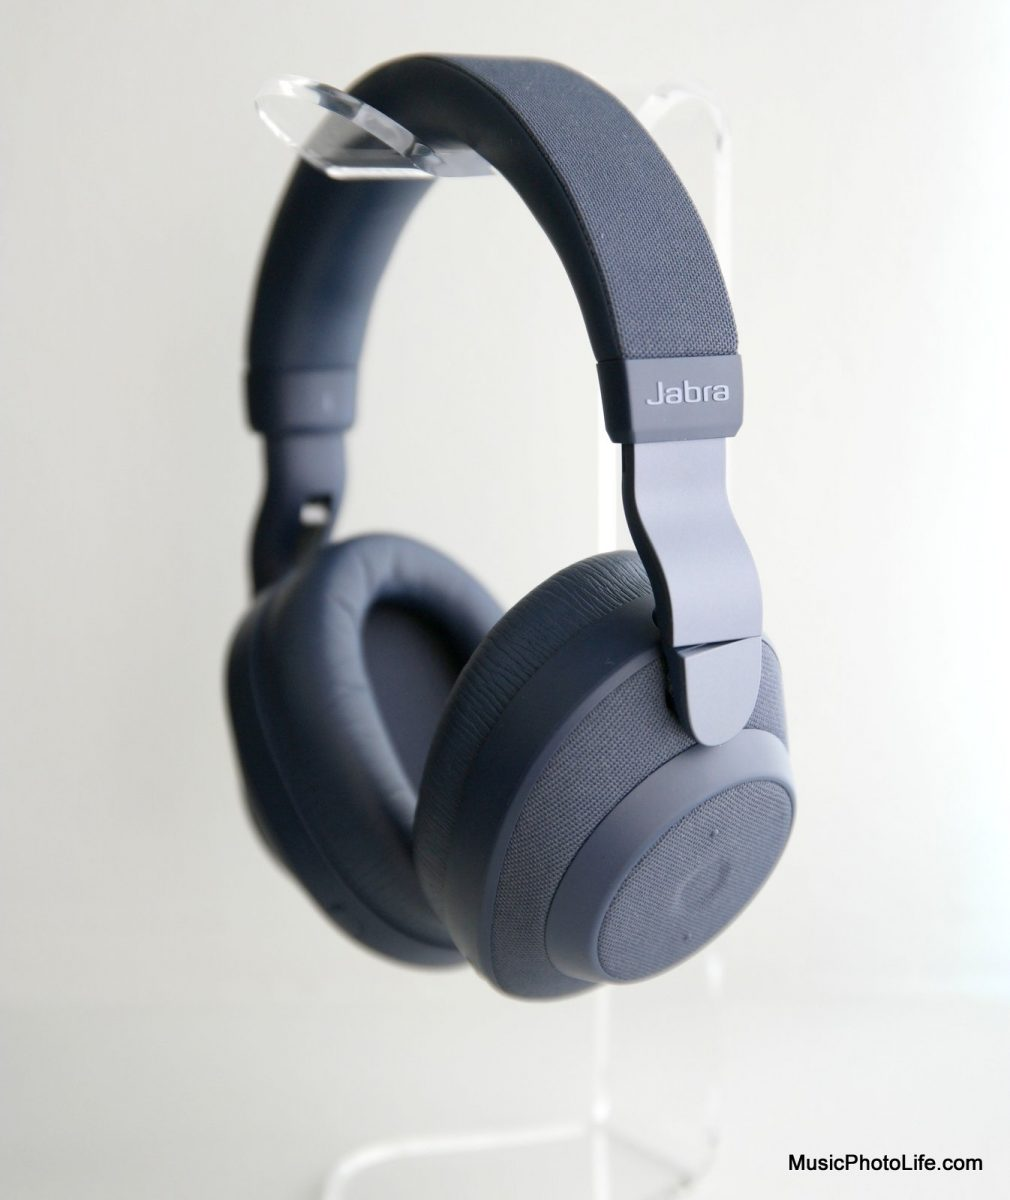 Jabra Elite 85h review by musicphotolife.com Singapore tech blog